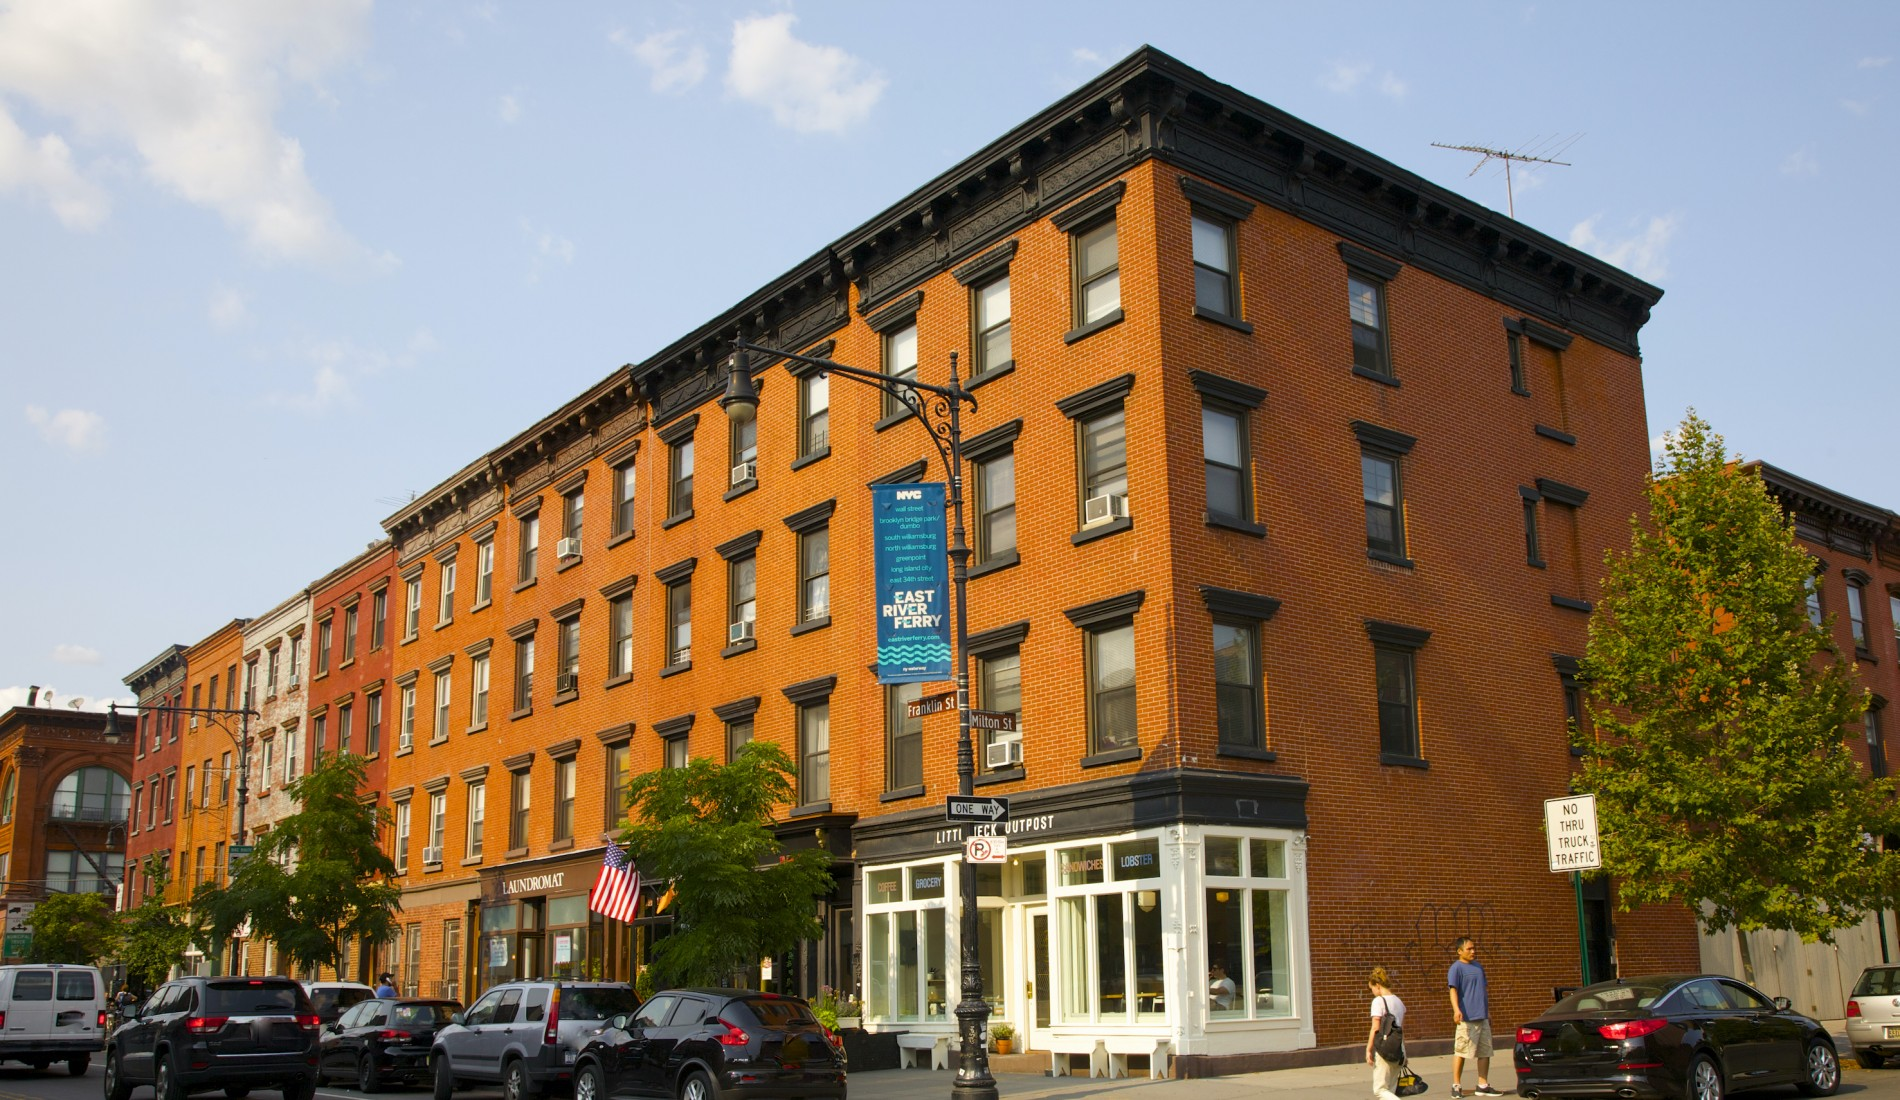 historic buildings in Greenpoint Brooklyn